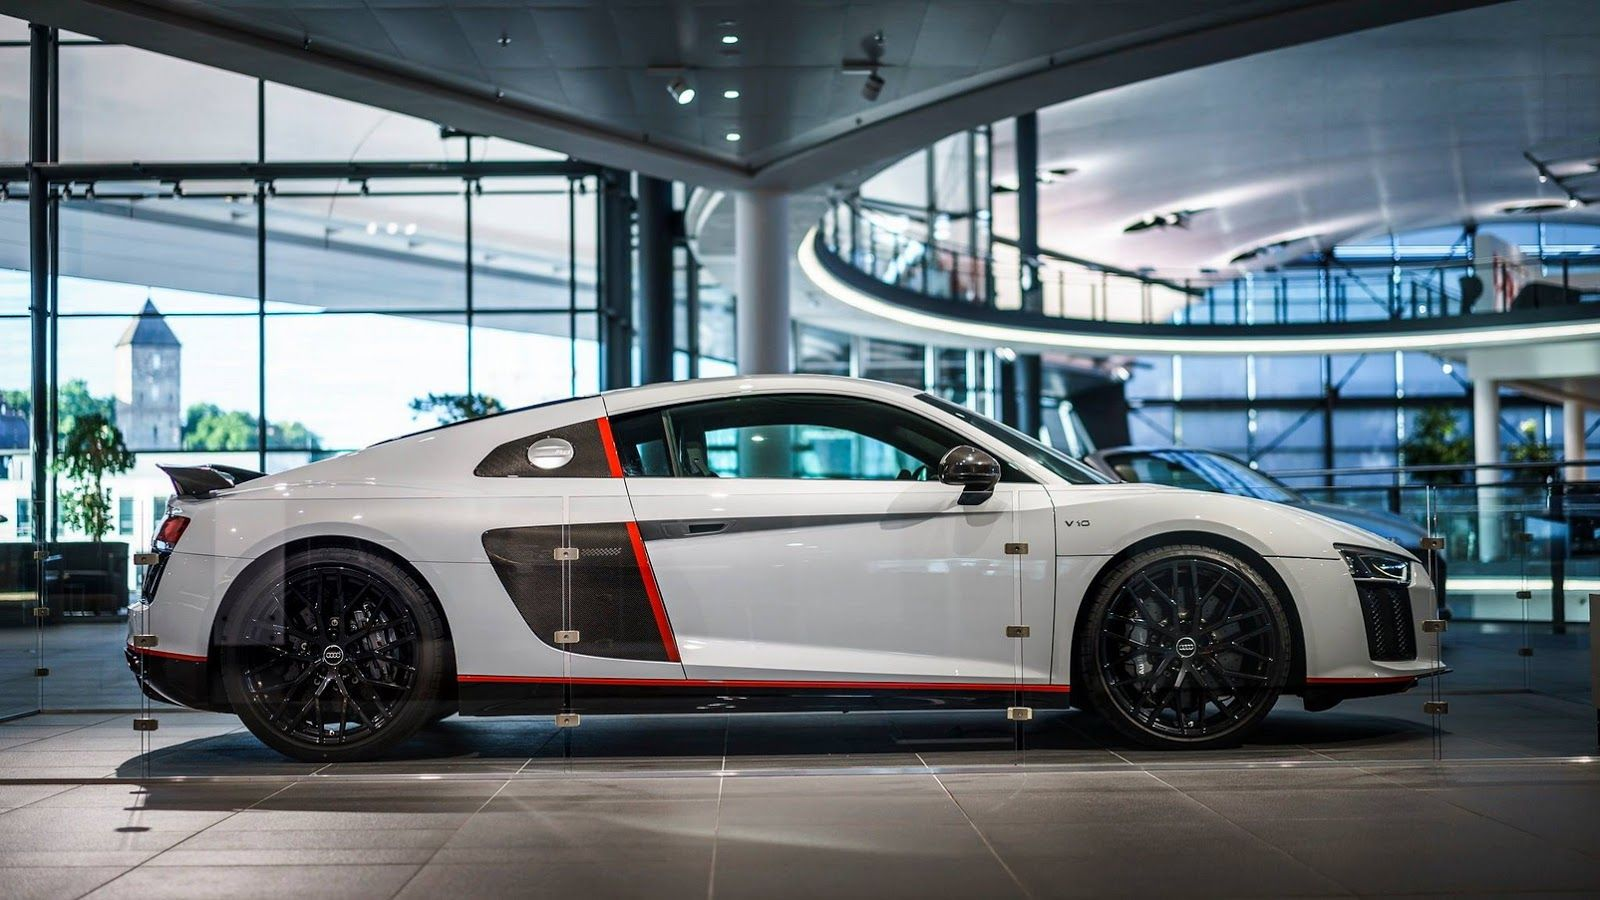 Audi shows off new r8 v10 plus selection 24h edition